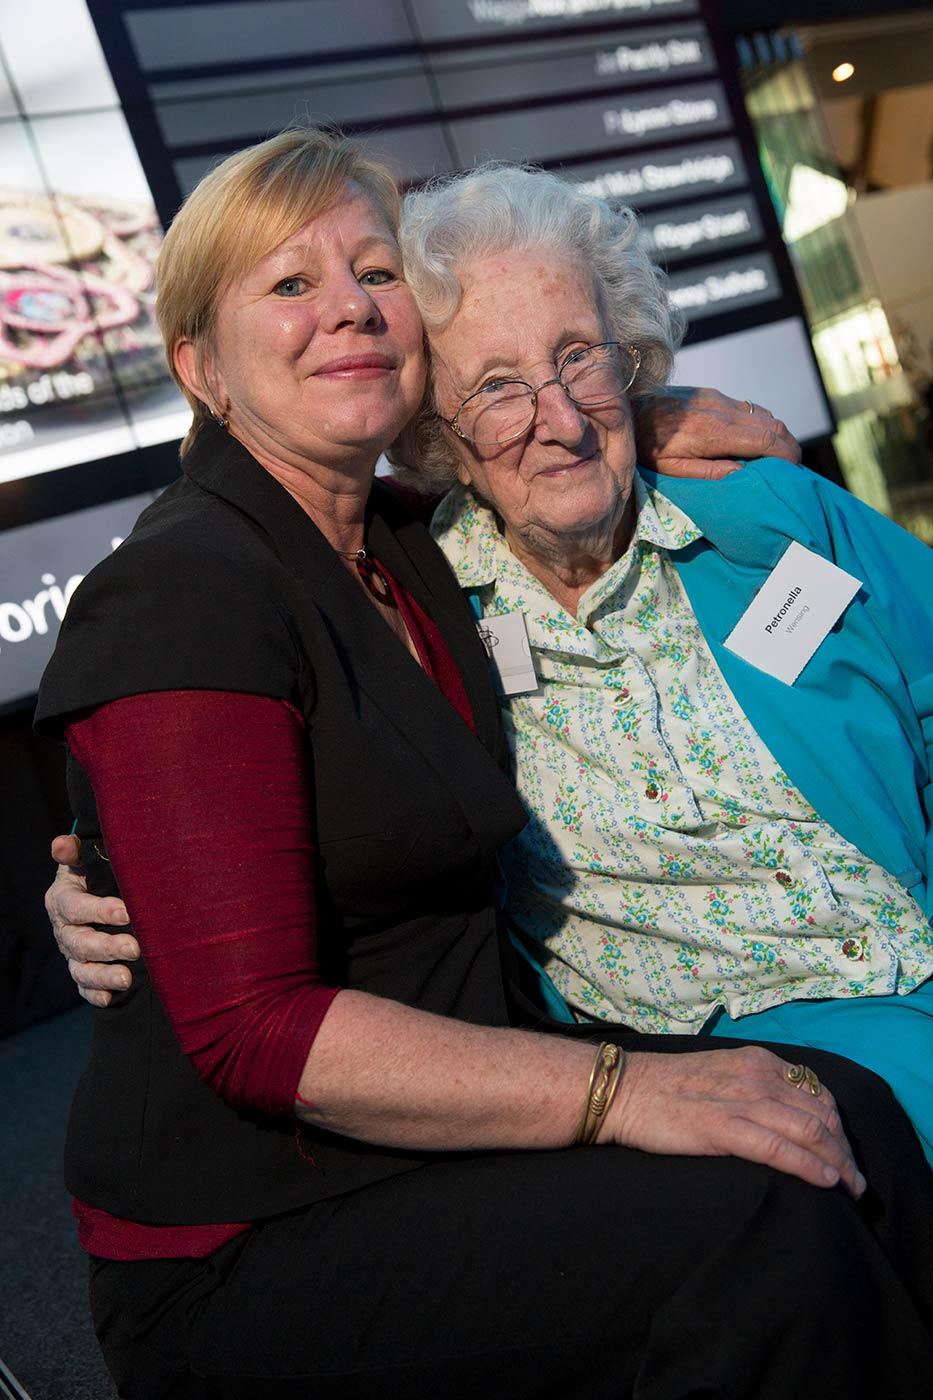 Museum donor Petronella Wensing, with her daughter Veronica, at the launch of the Museum Donor Honour Board, November 2013.